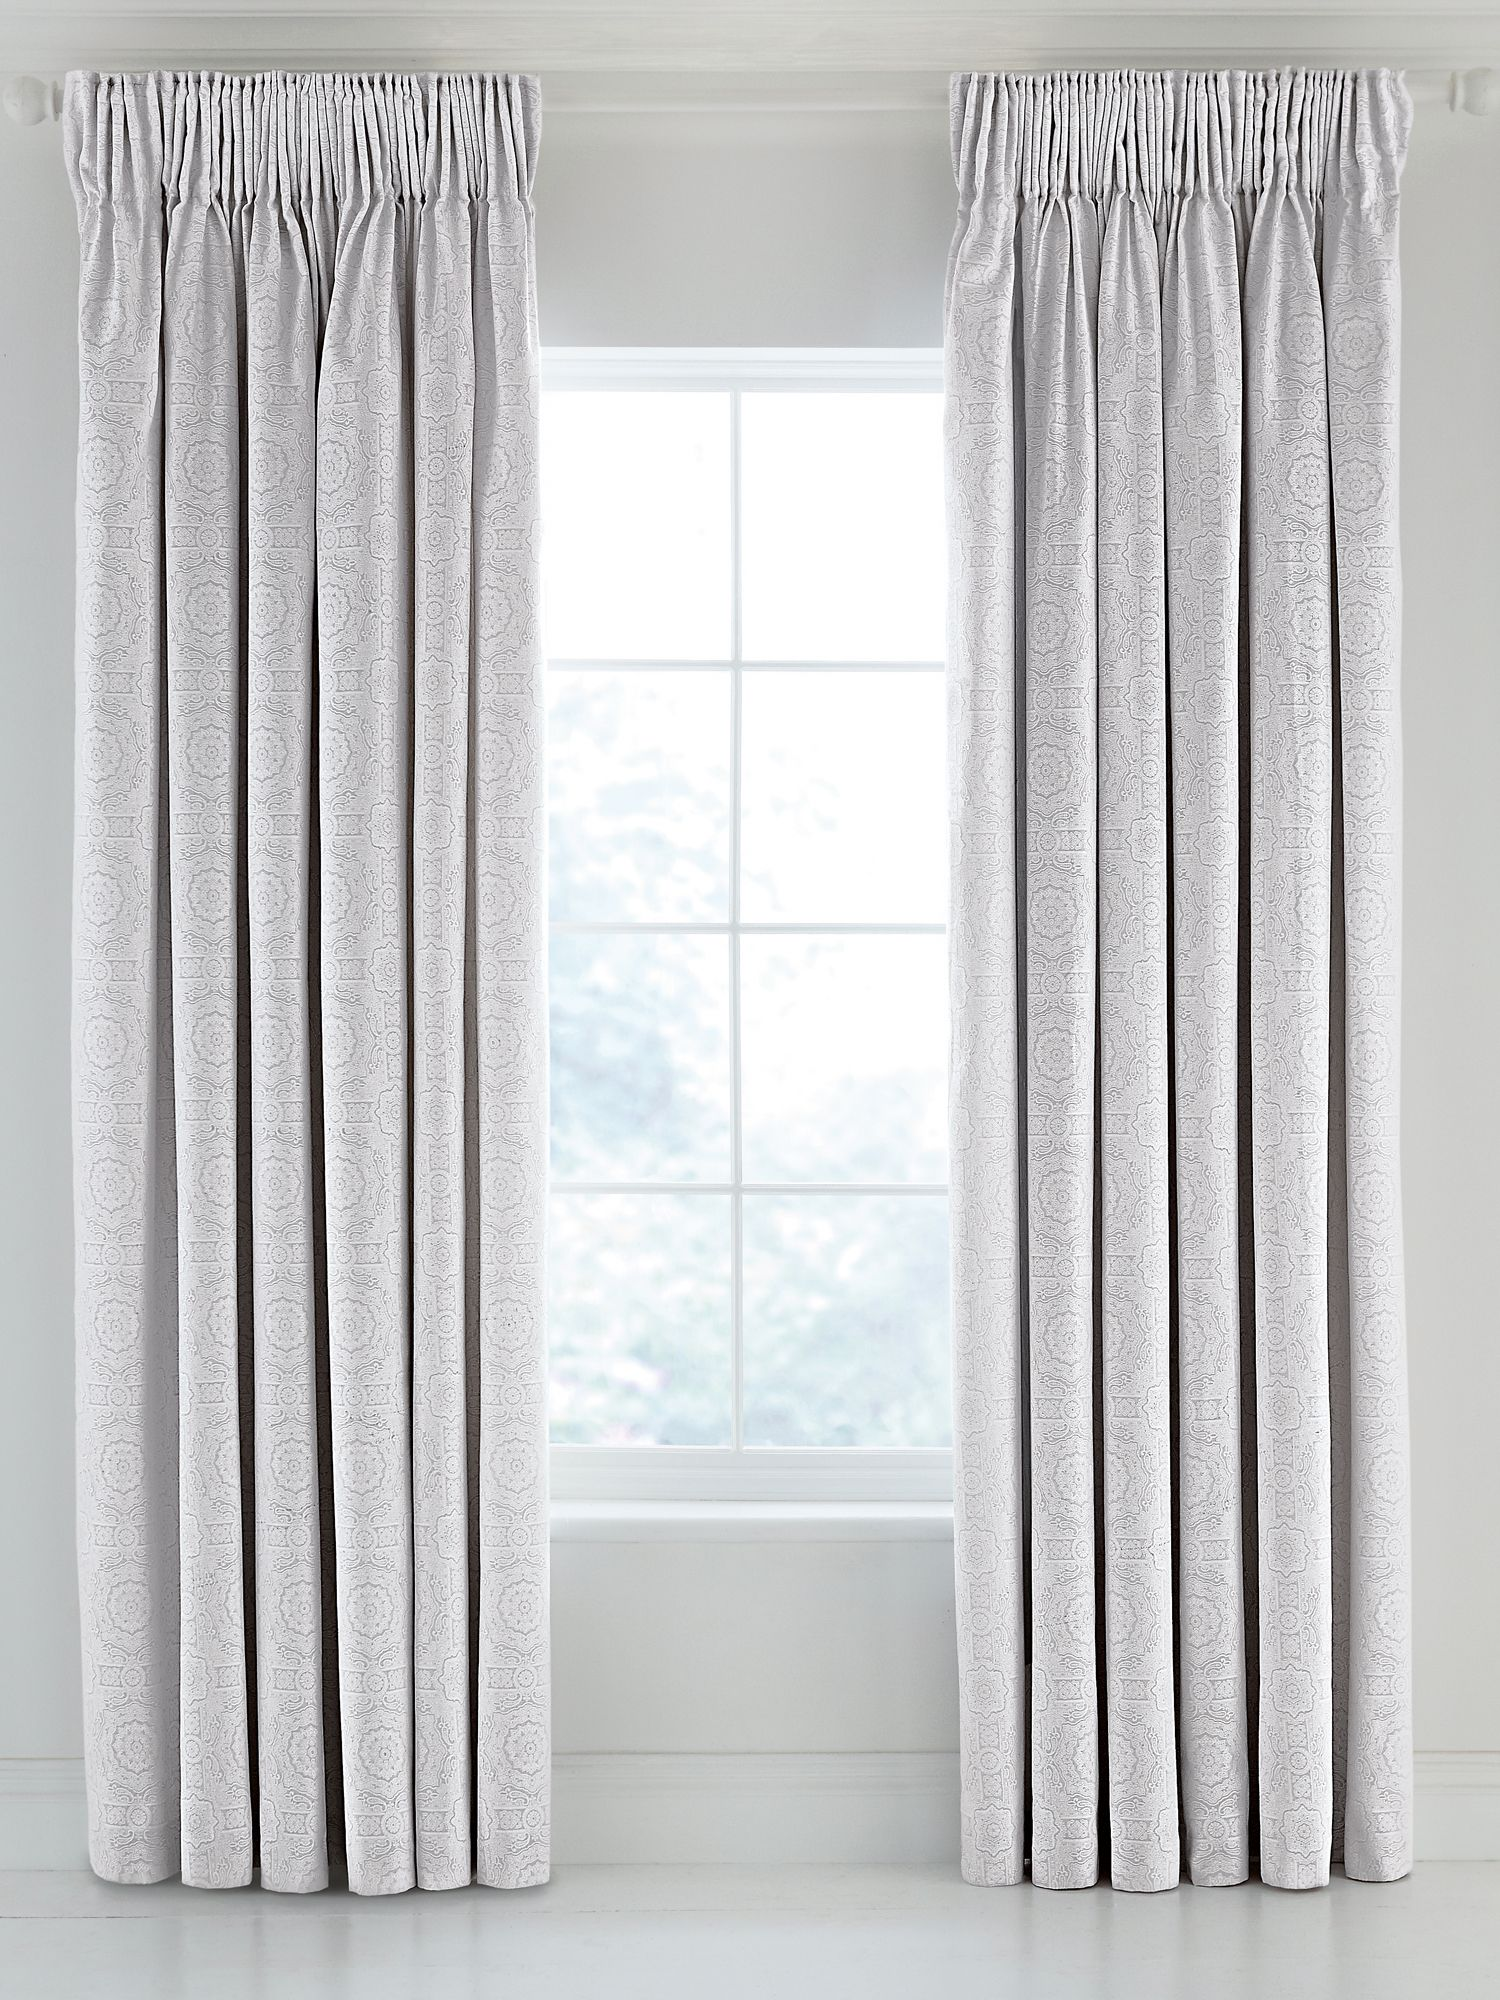 Fable Fable Beaumont lined curtains 66x72 silver